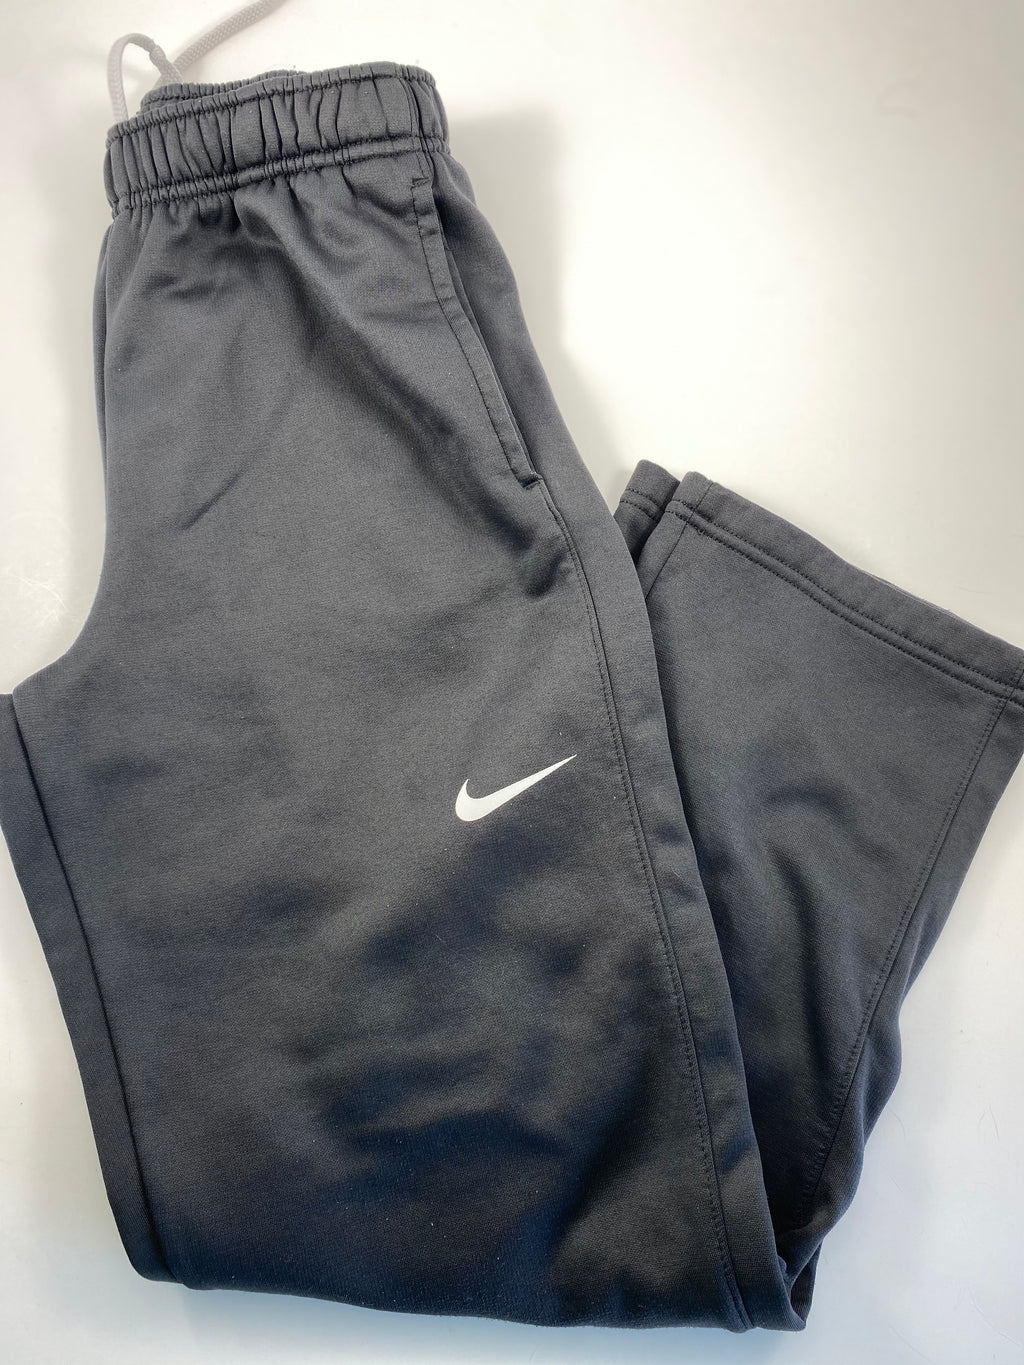 Boy's Pants - Size 10/12